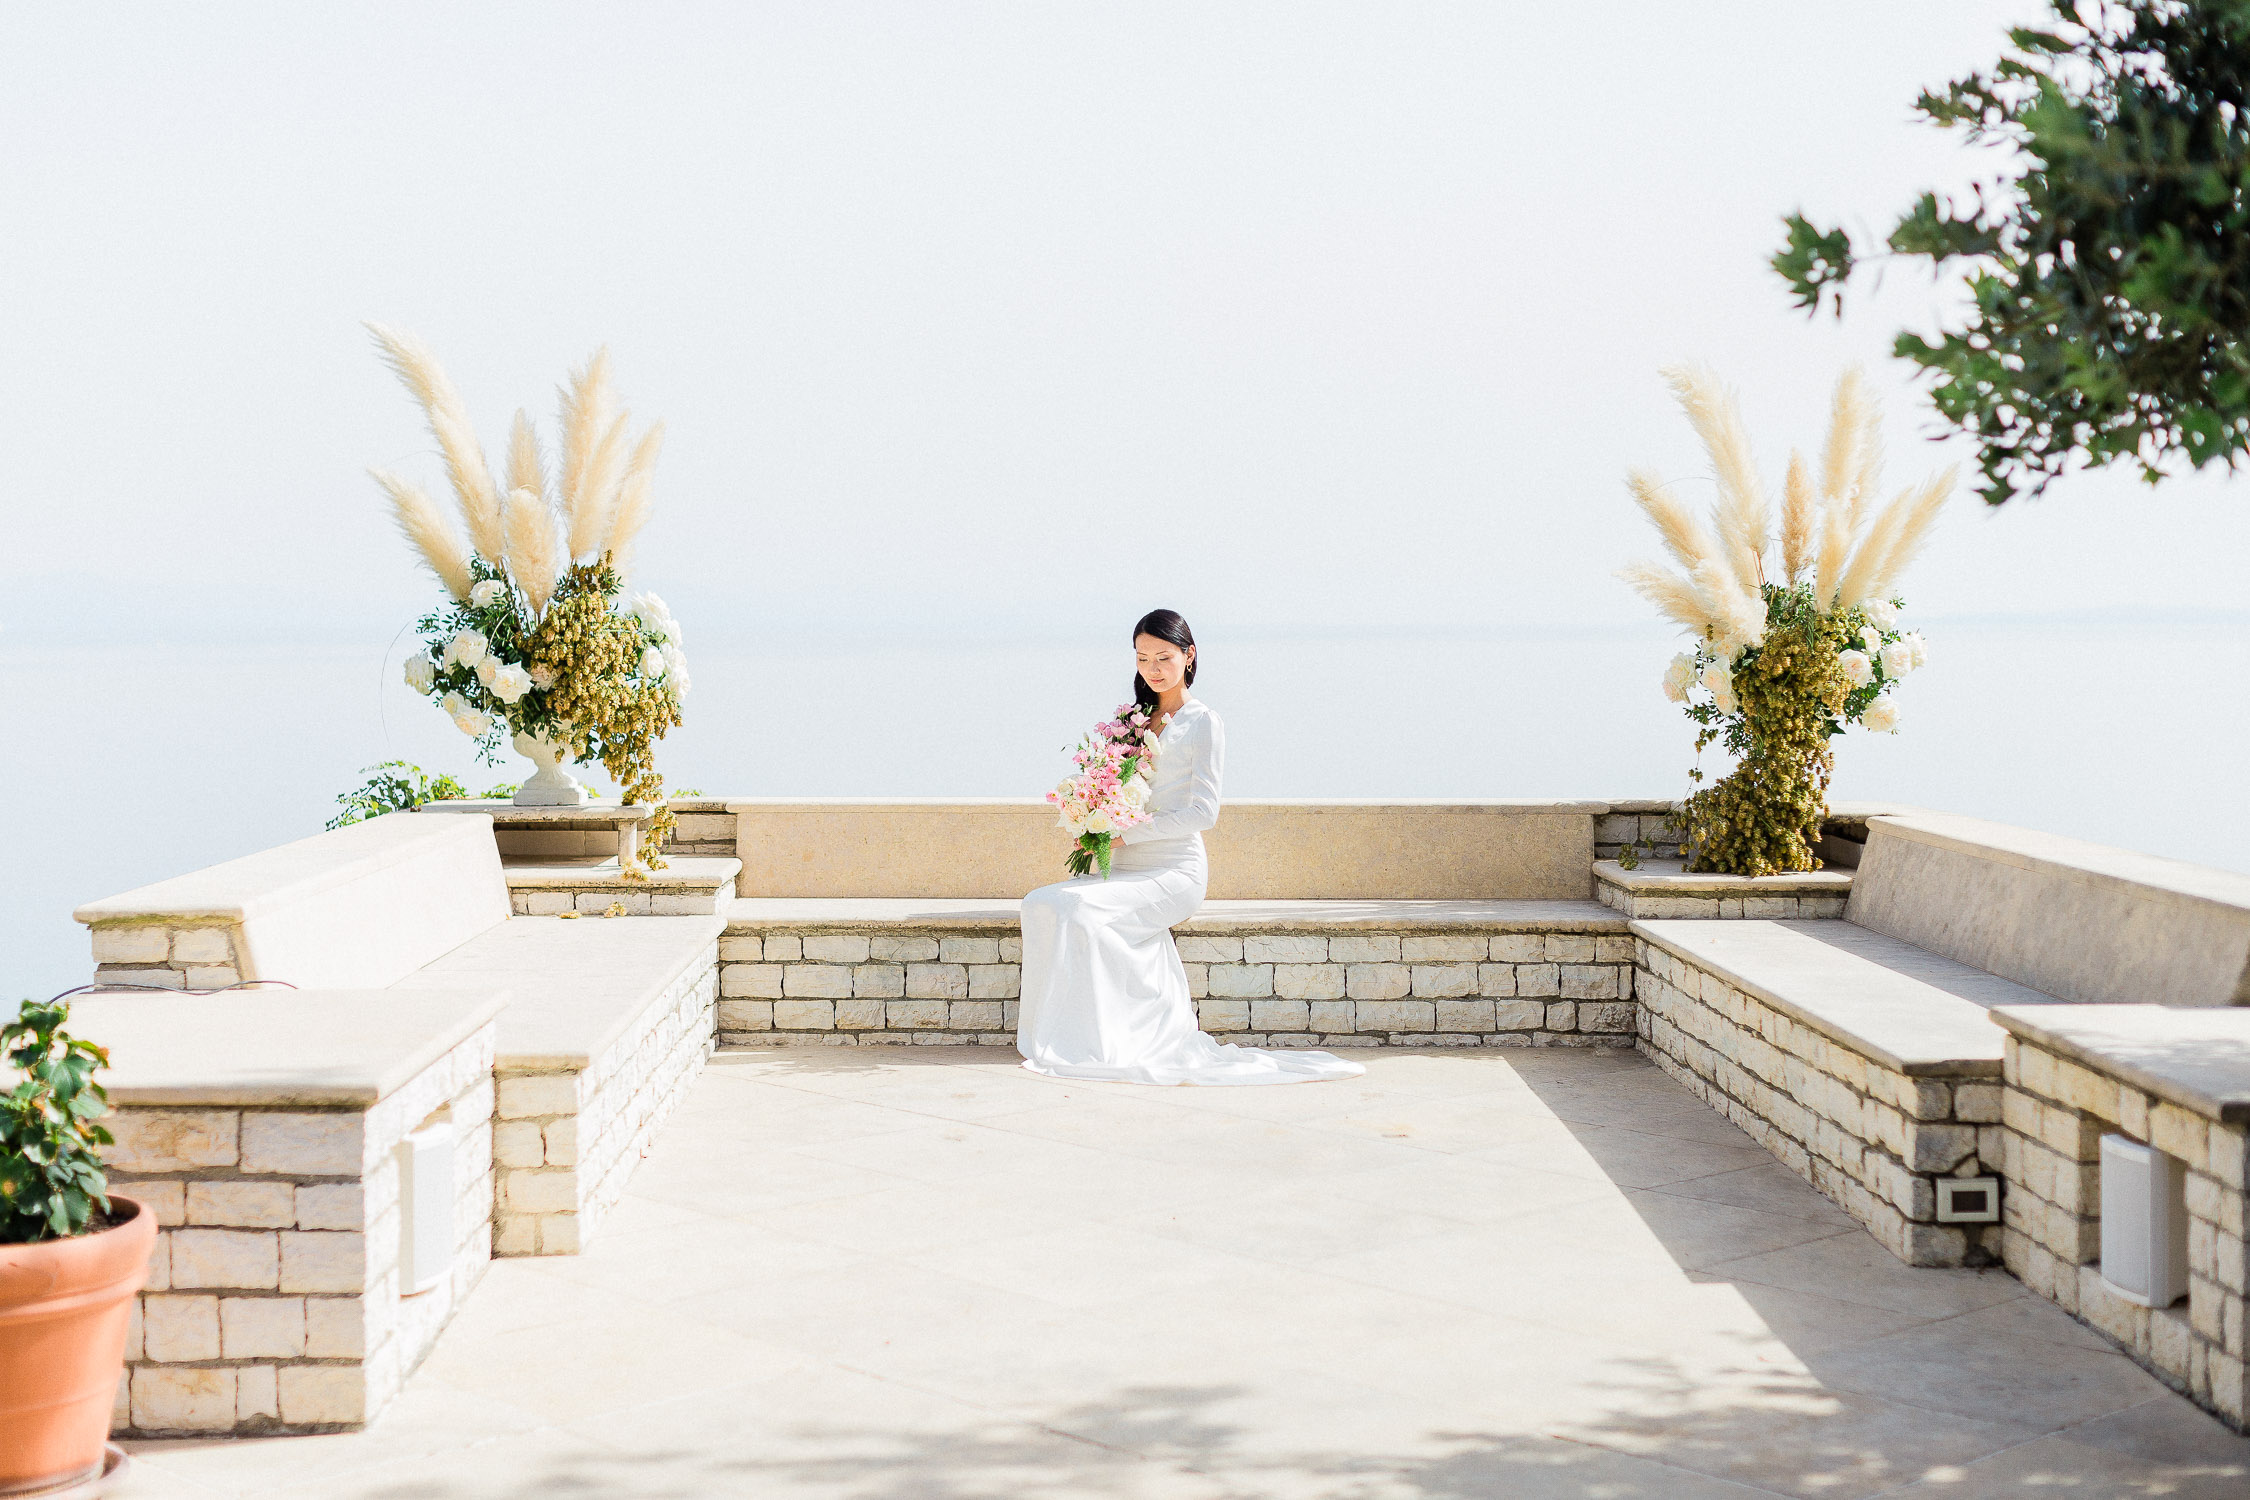 A gorgeous bride on a royal style wedding at Corfu island